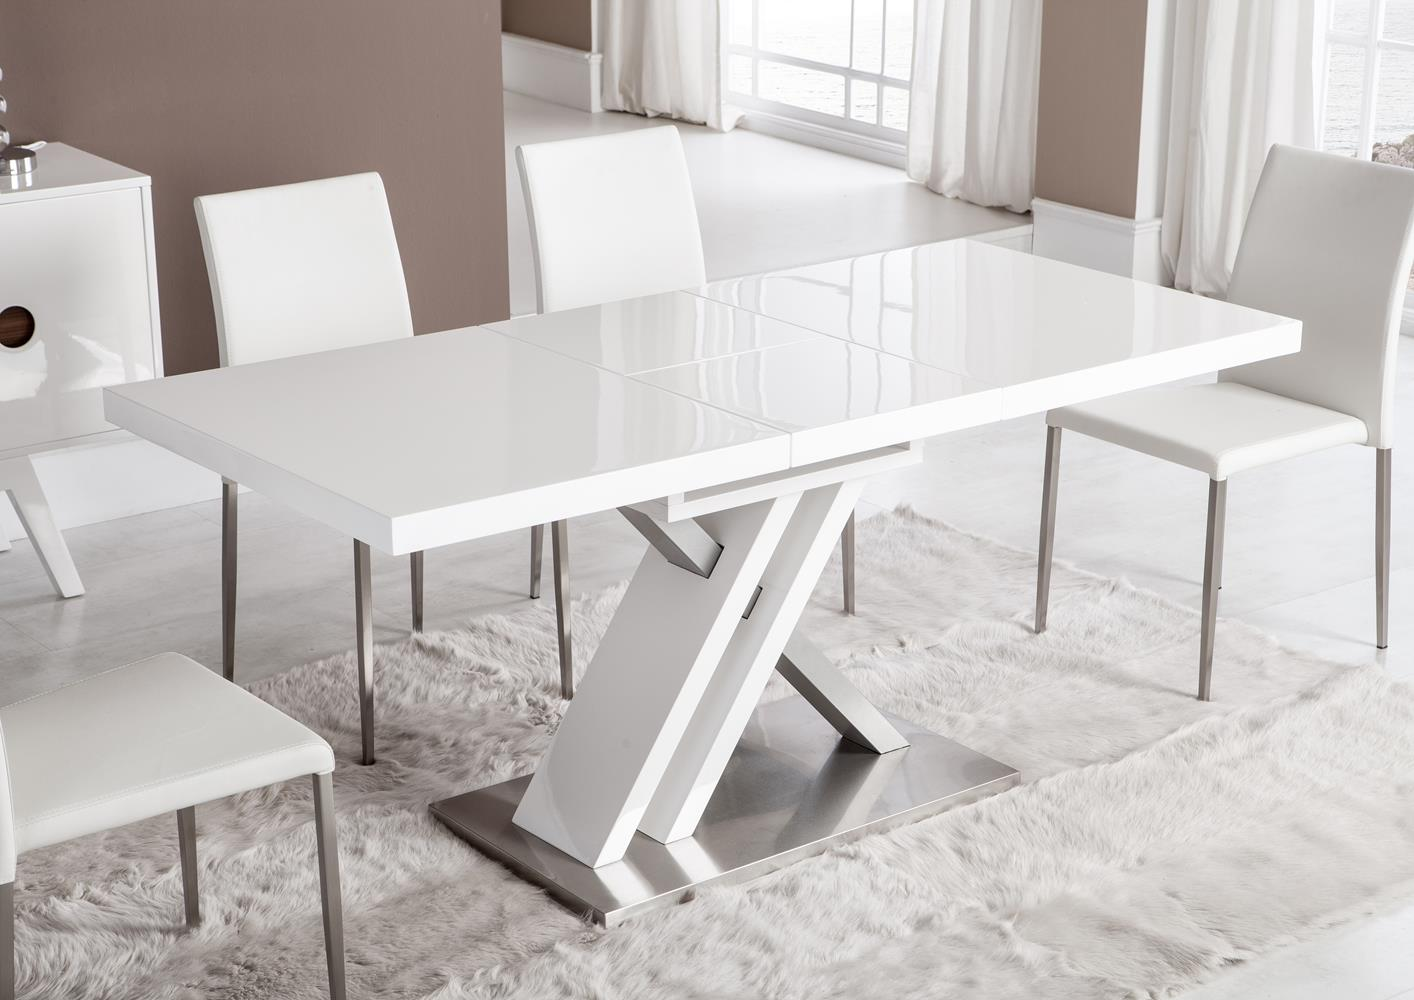 table moderne pied central croix laquee blanche